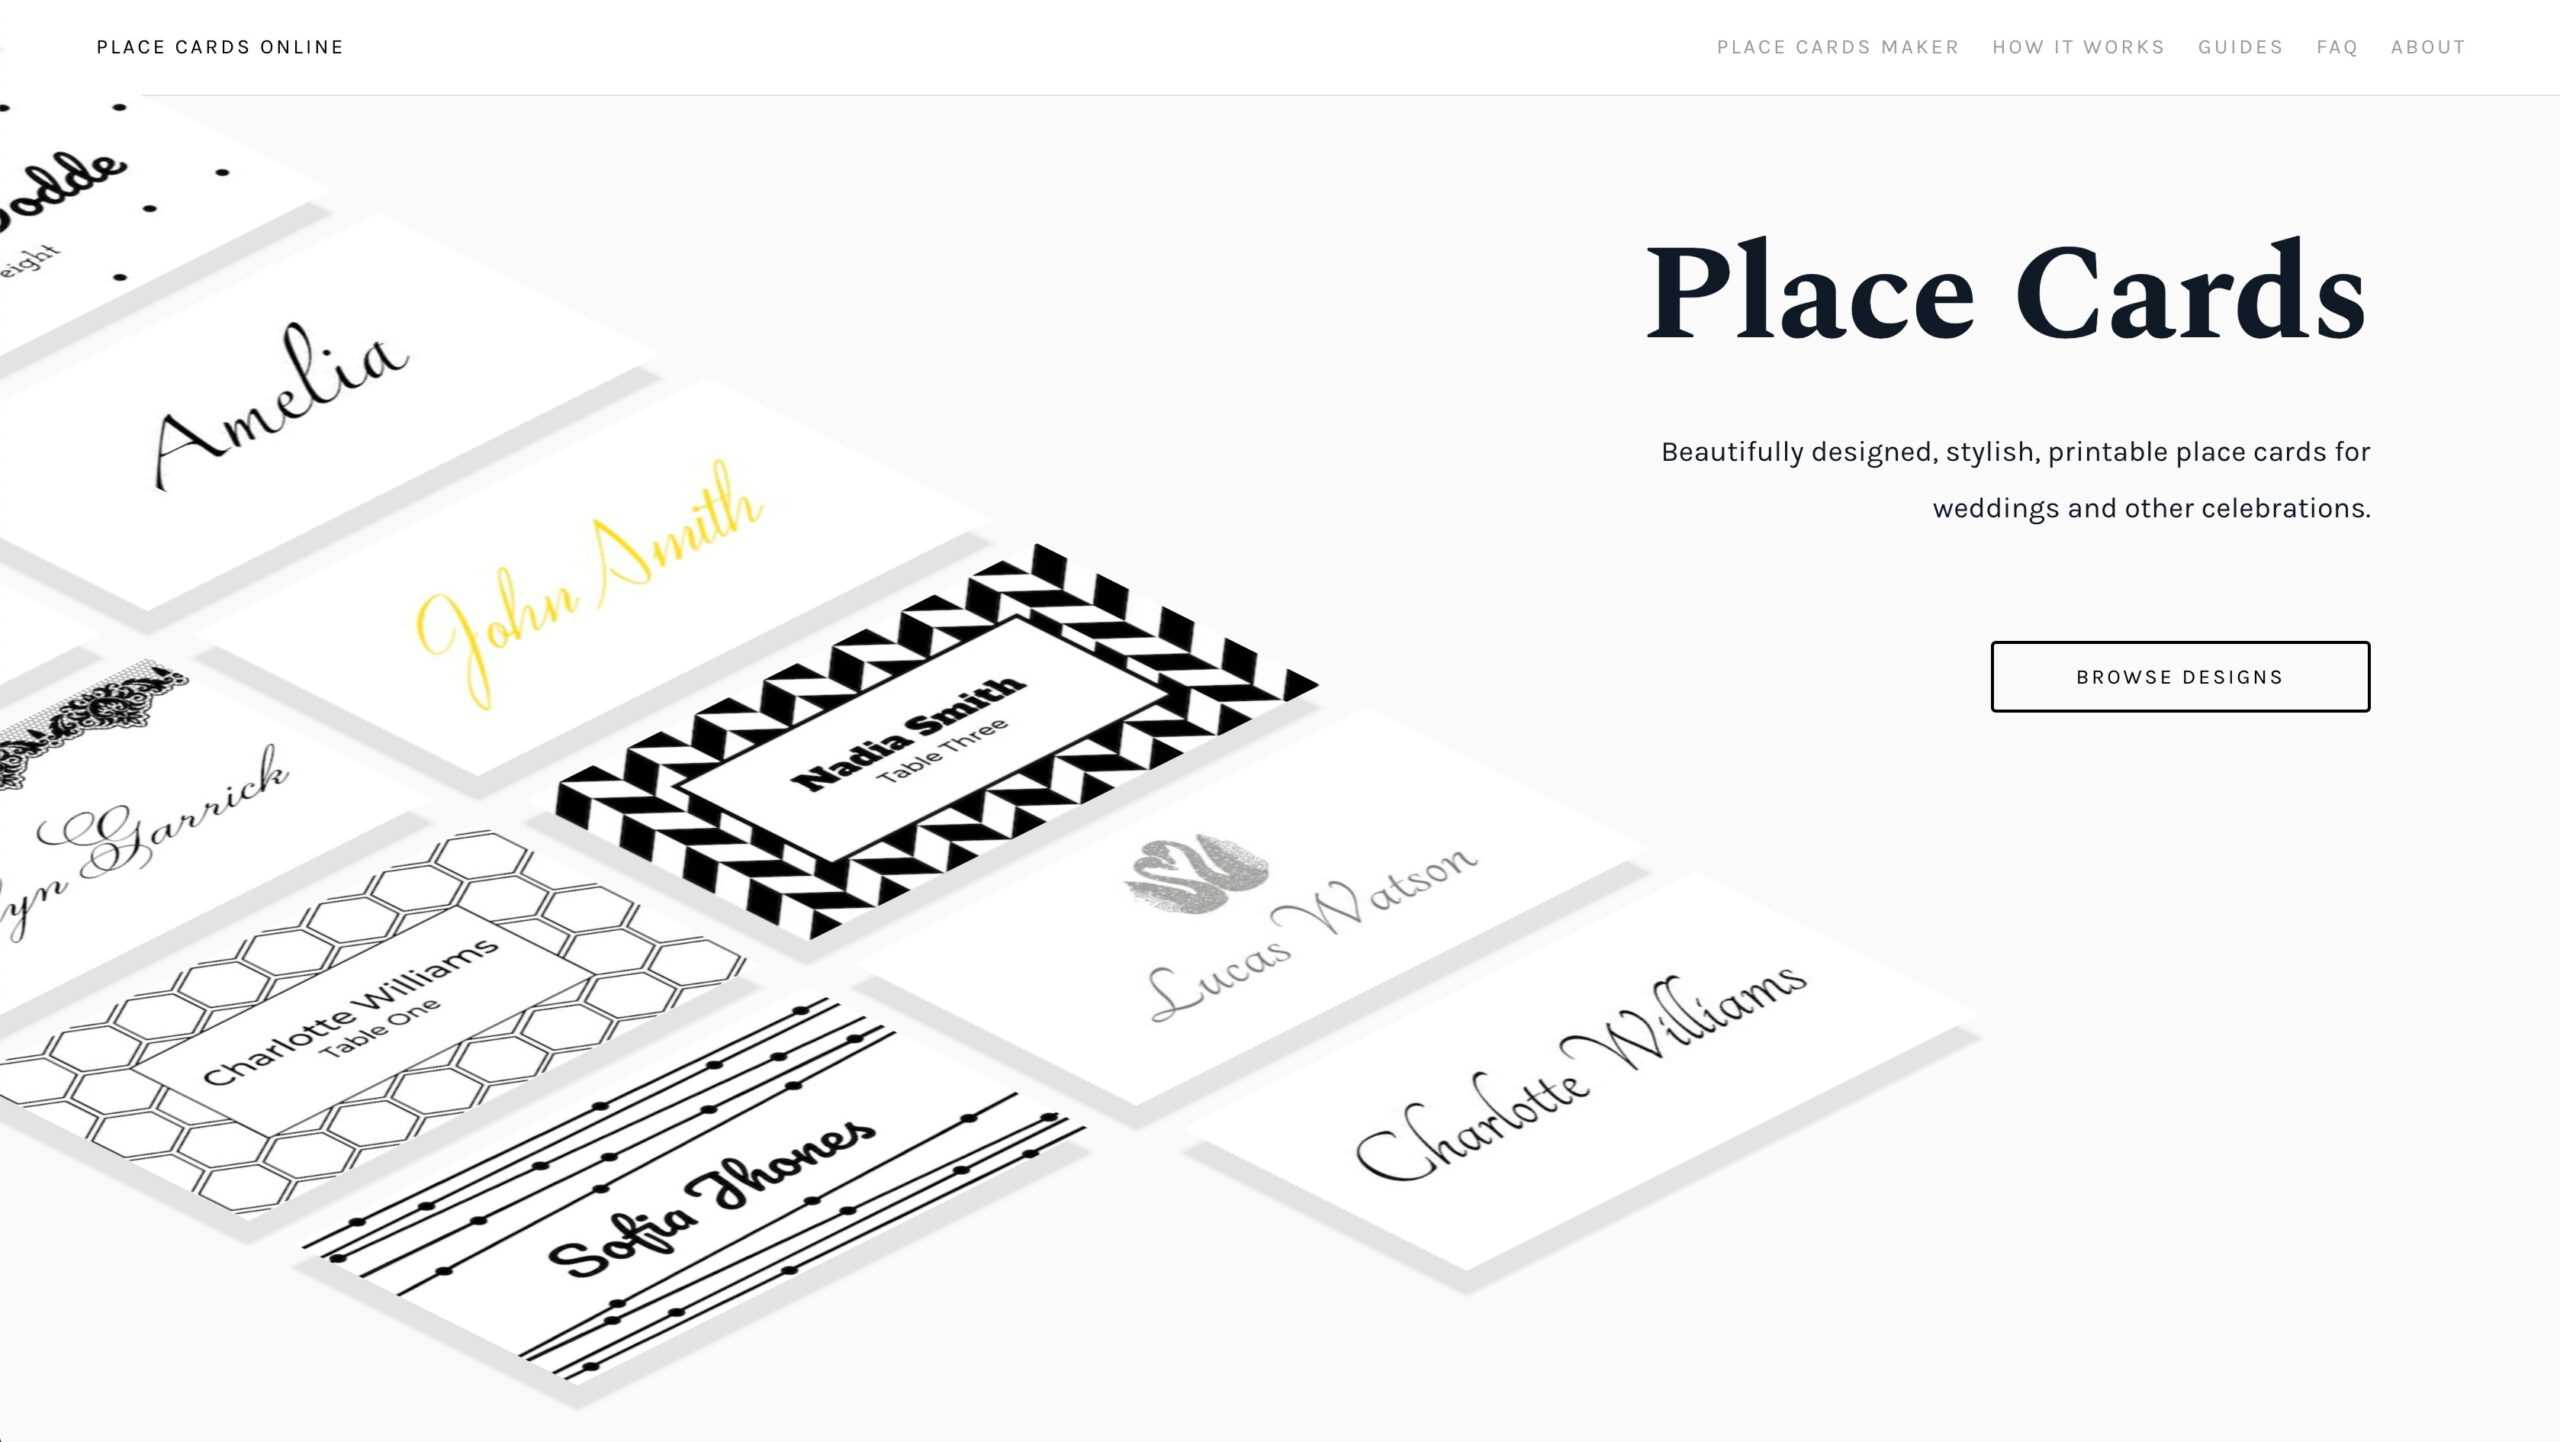 Place Cards Online - Place Cards Maker. Beautifully Designed With Celebrate It Templates Place Cards